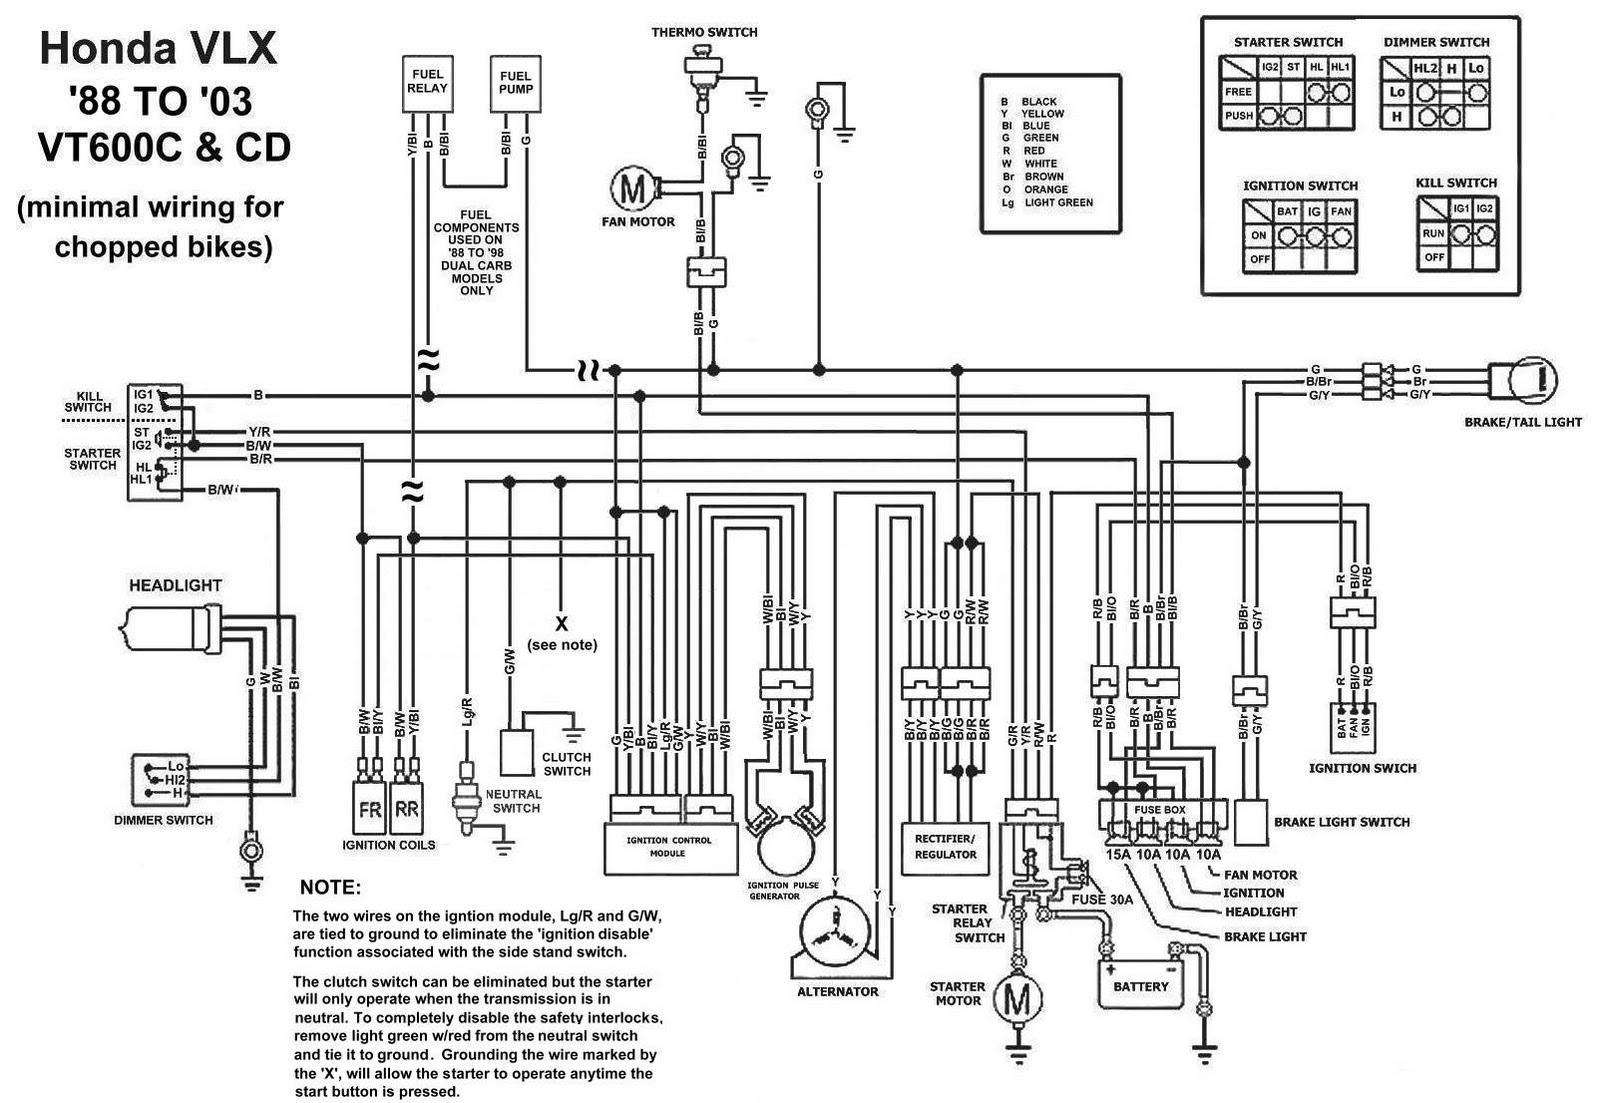 Motorcycle Ignition Coil Wiring Diagram Vt1100 from 1.bp.blogspot.com